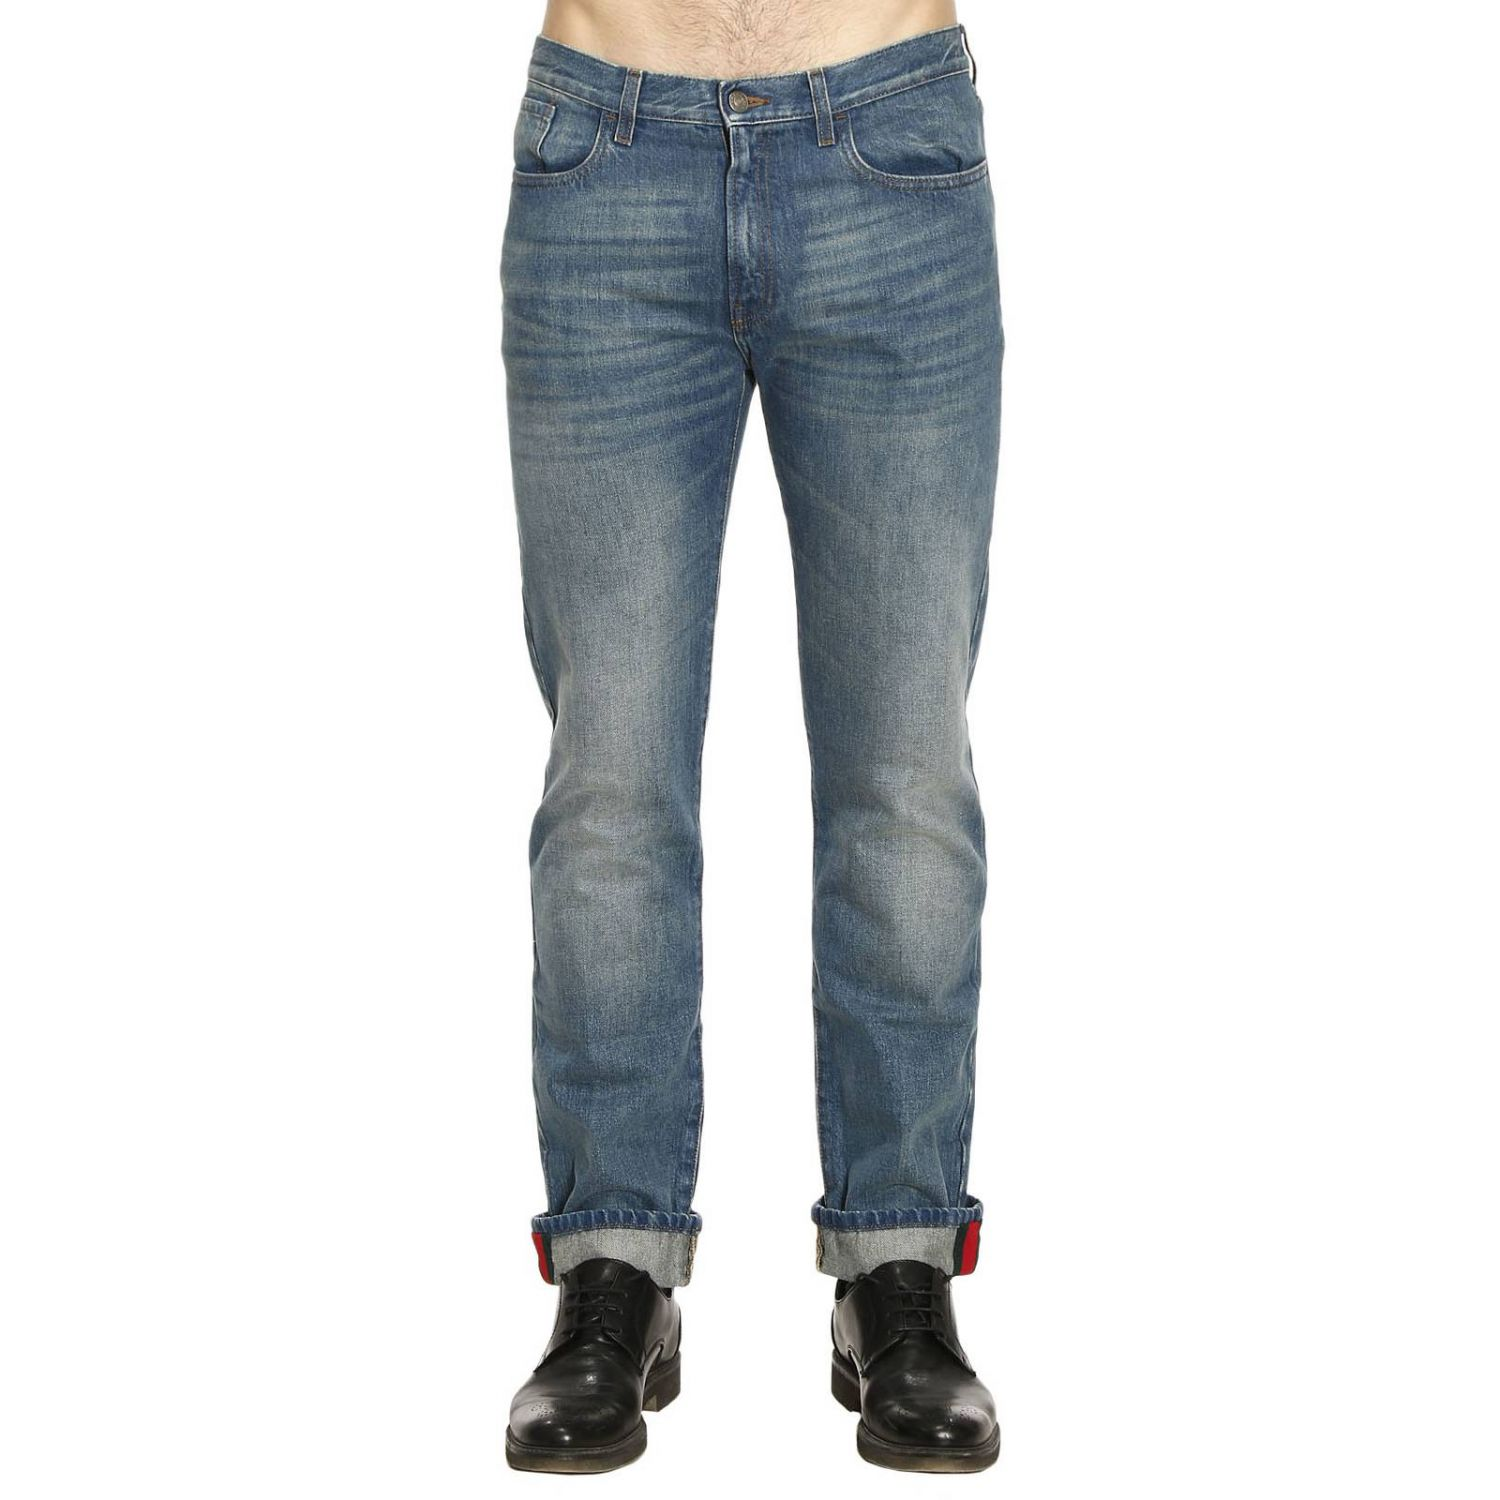 Jeans Straight Regular Fit Jeans With Cuff And Web Detail 8231347